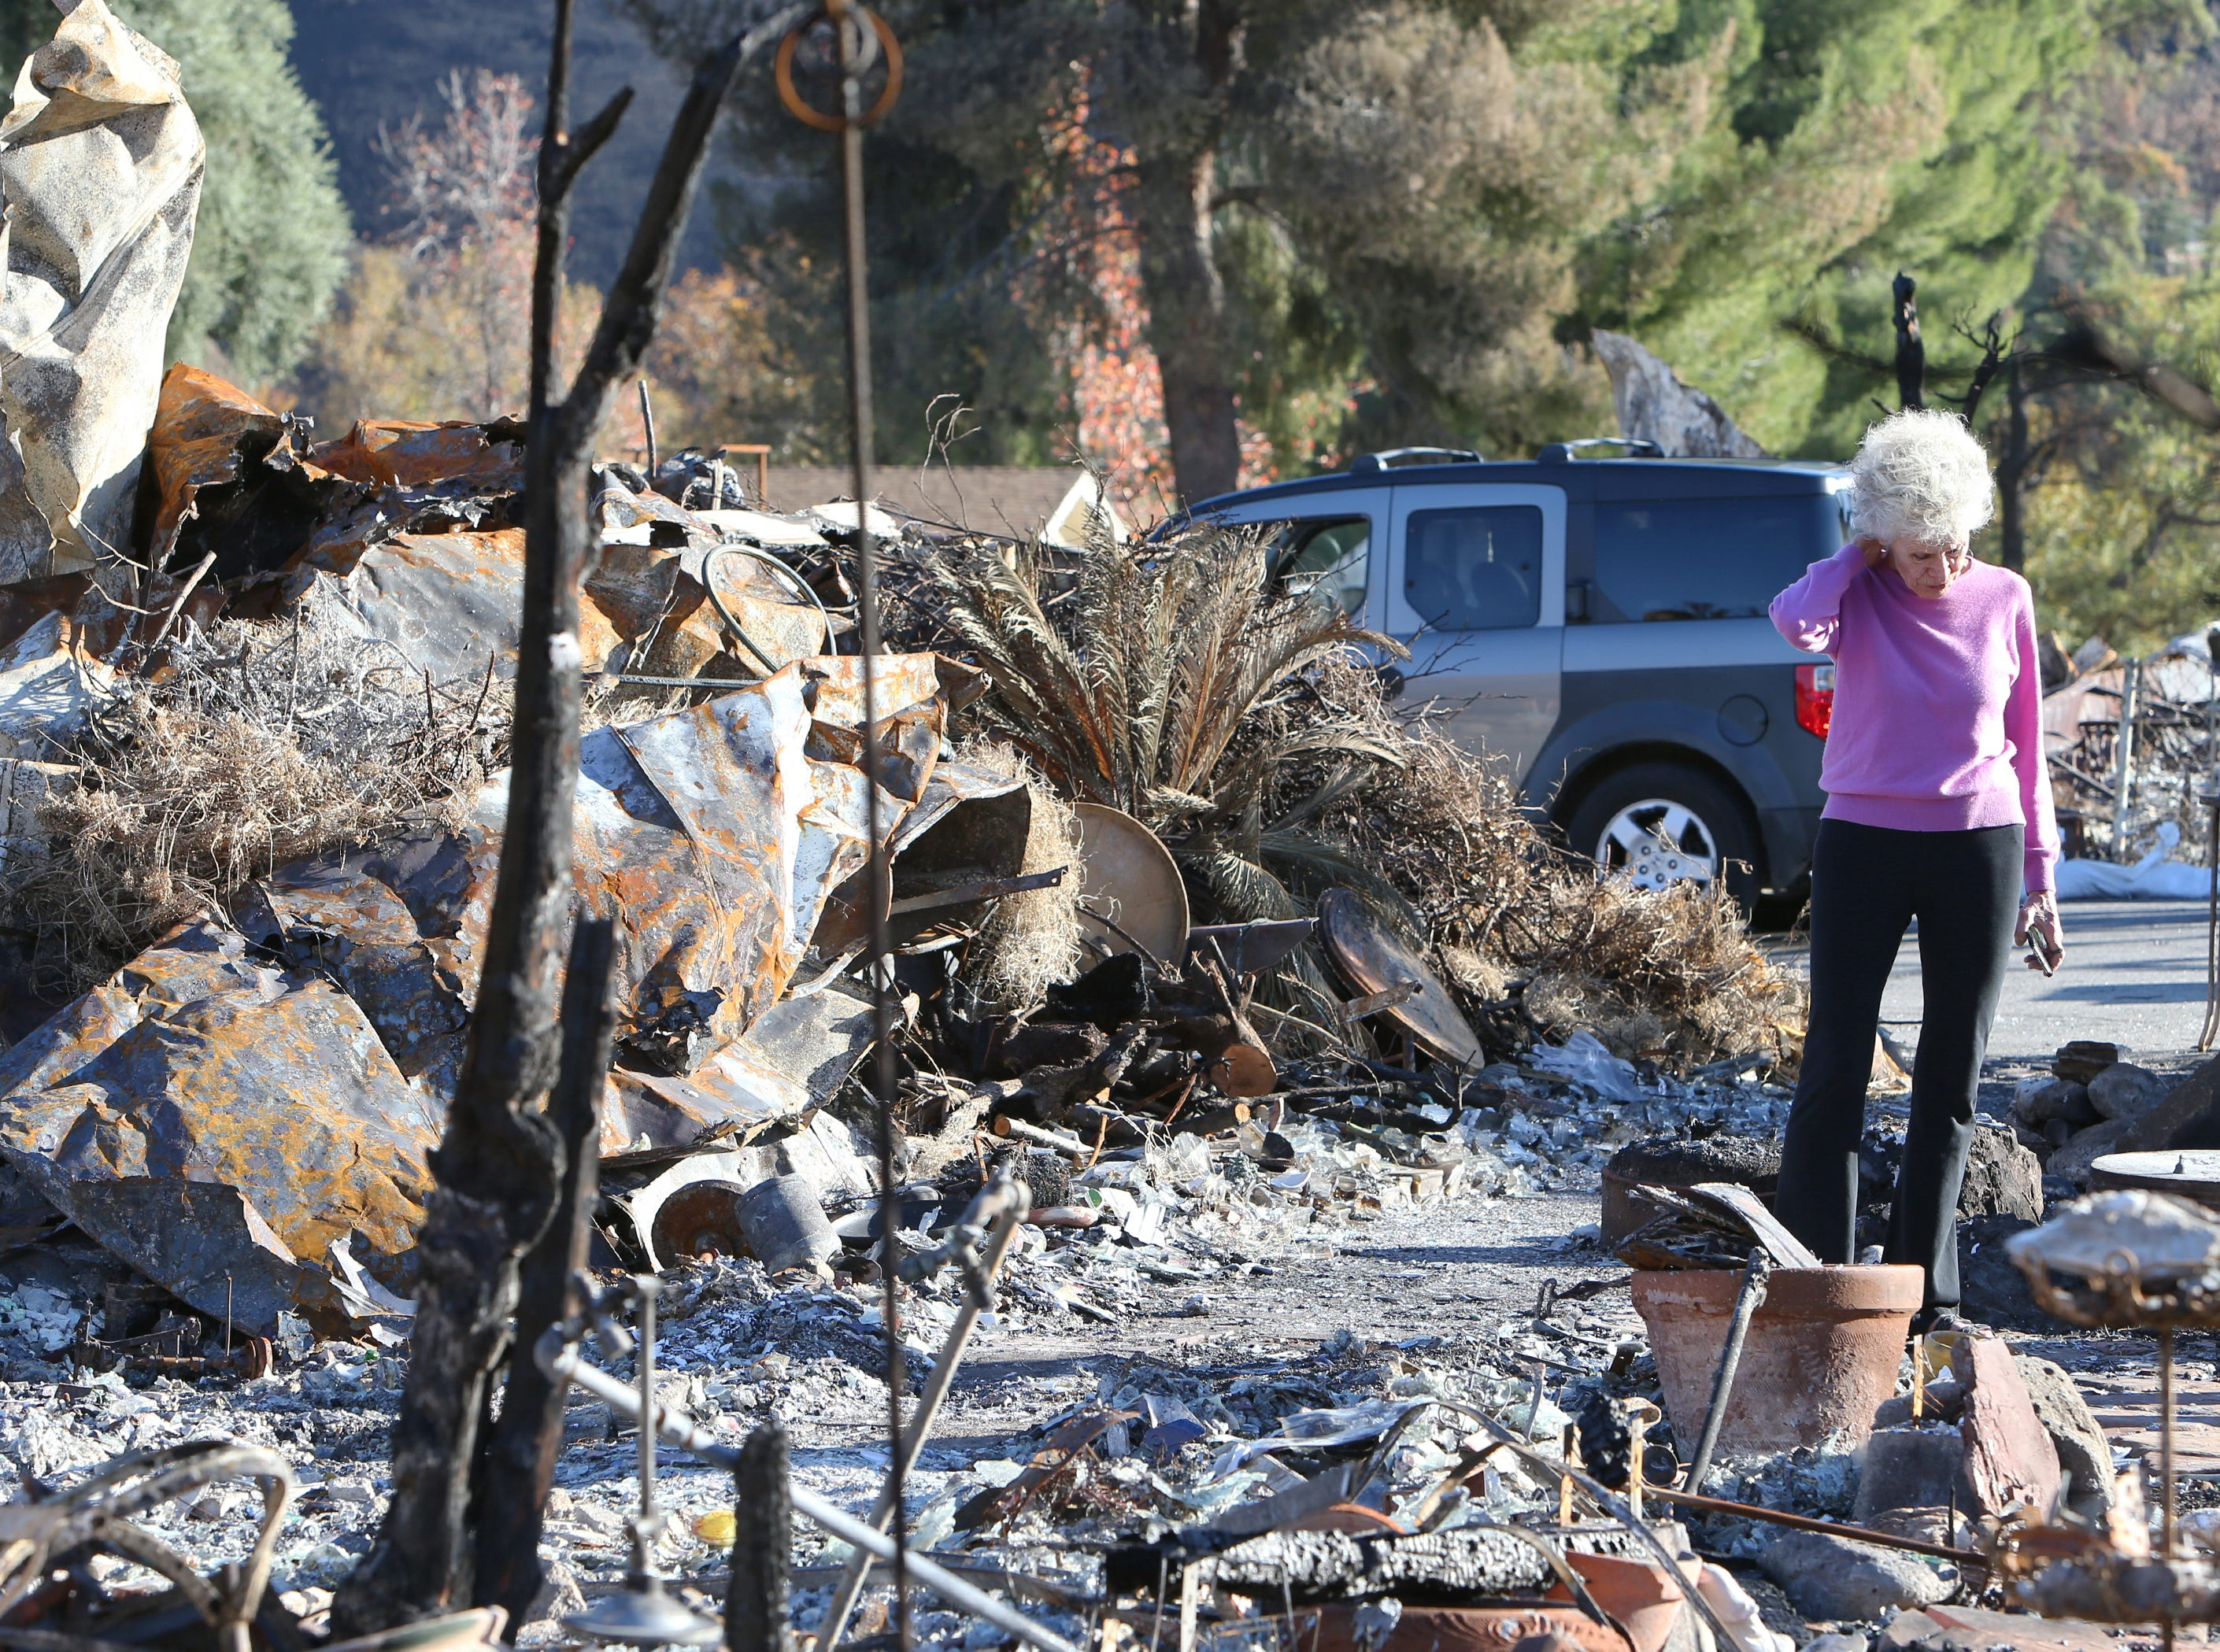 Marsha Maus stands amid the ruins of her mobile home, which was destroyed when the Woolsey Fire burned through the Seminole Springs Mobile Home Park in Agoura Hills. The fire destroyed 1,197 homes in Ventura and Los Angeles counties.